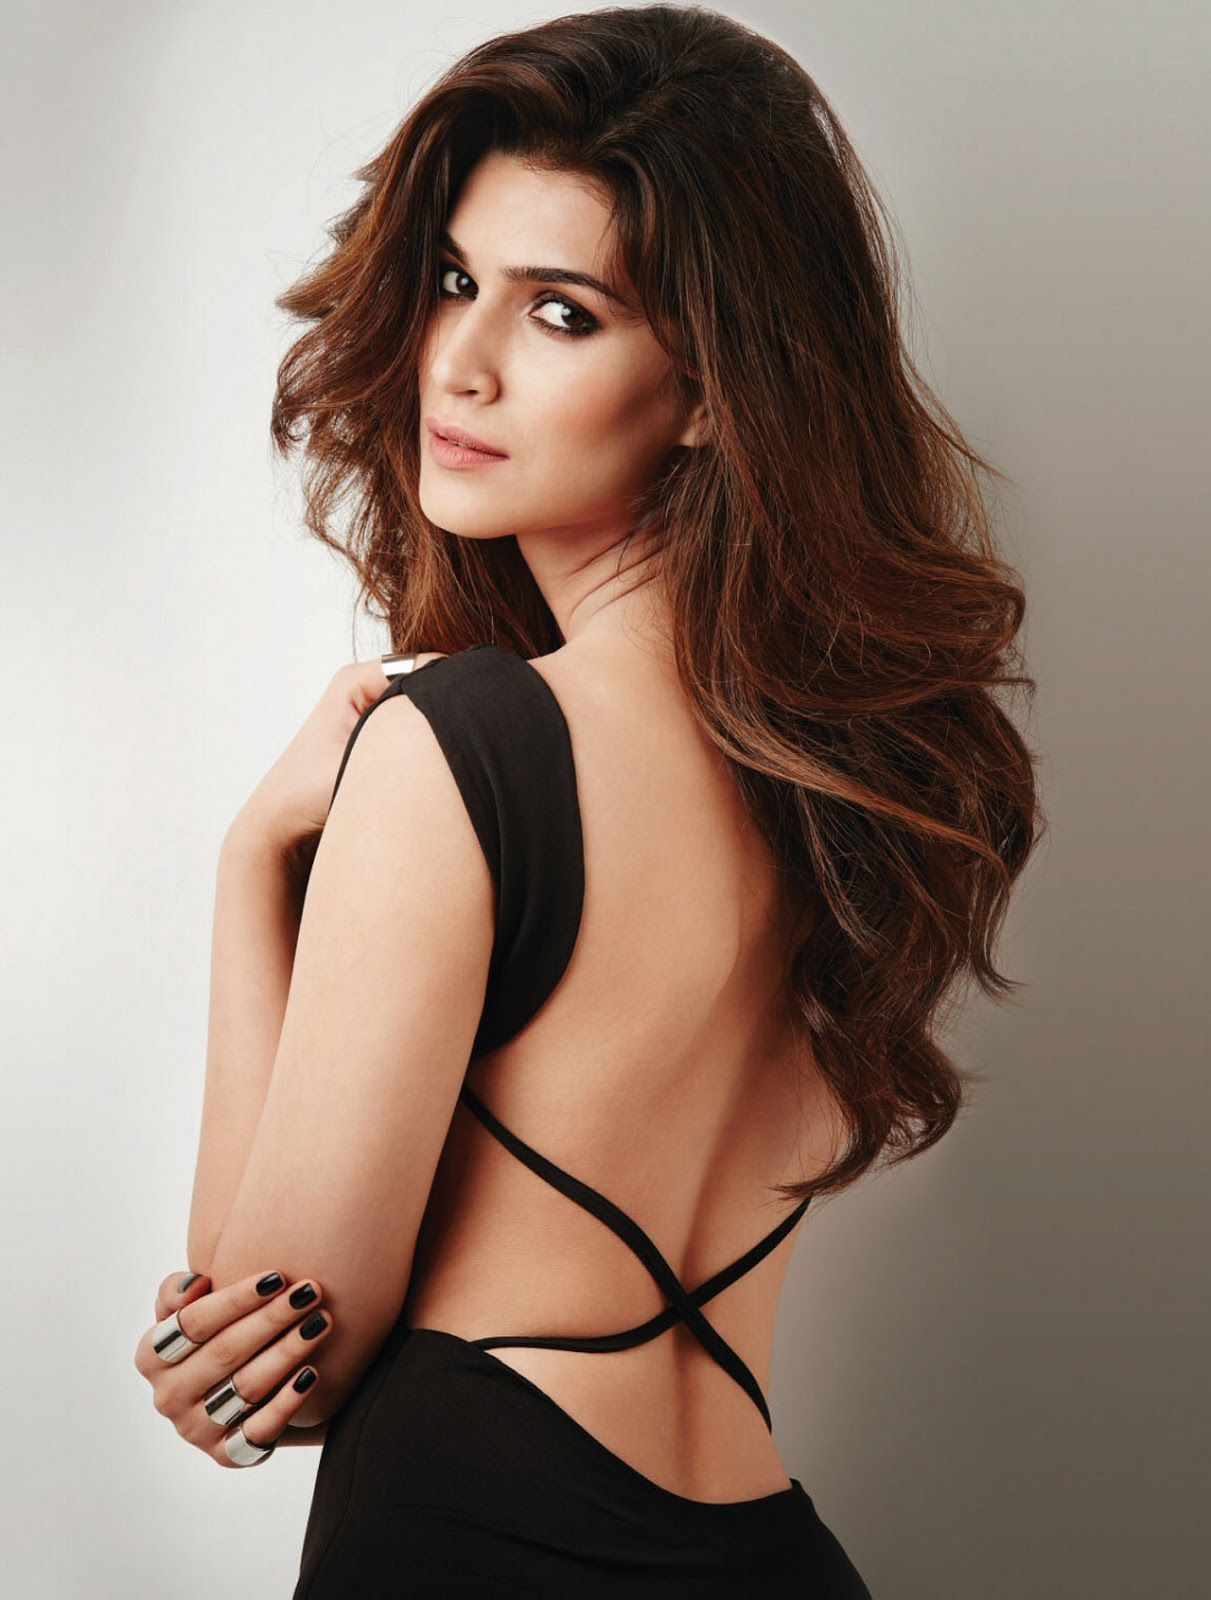 kriti sanon's photoshoot for femina india. #bollywood #fashion